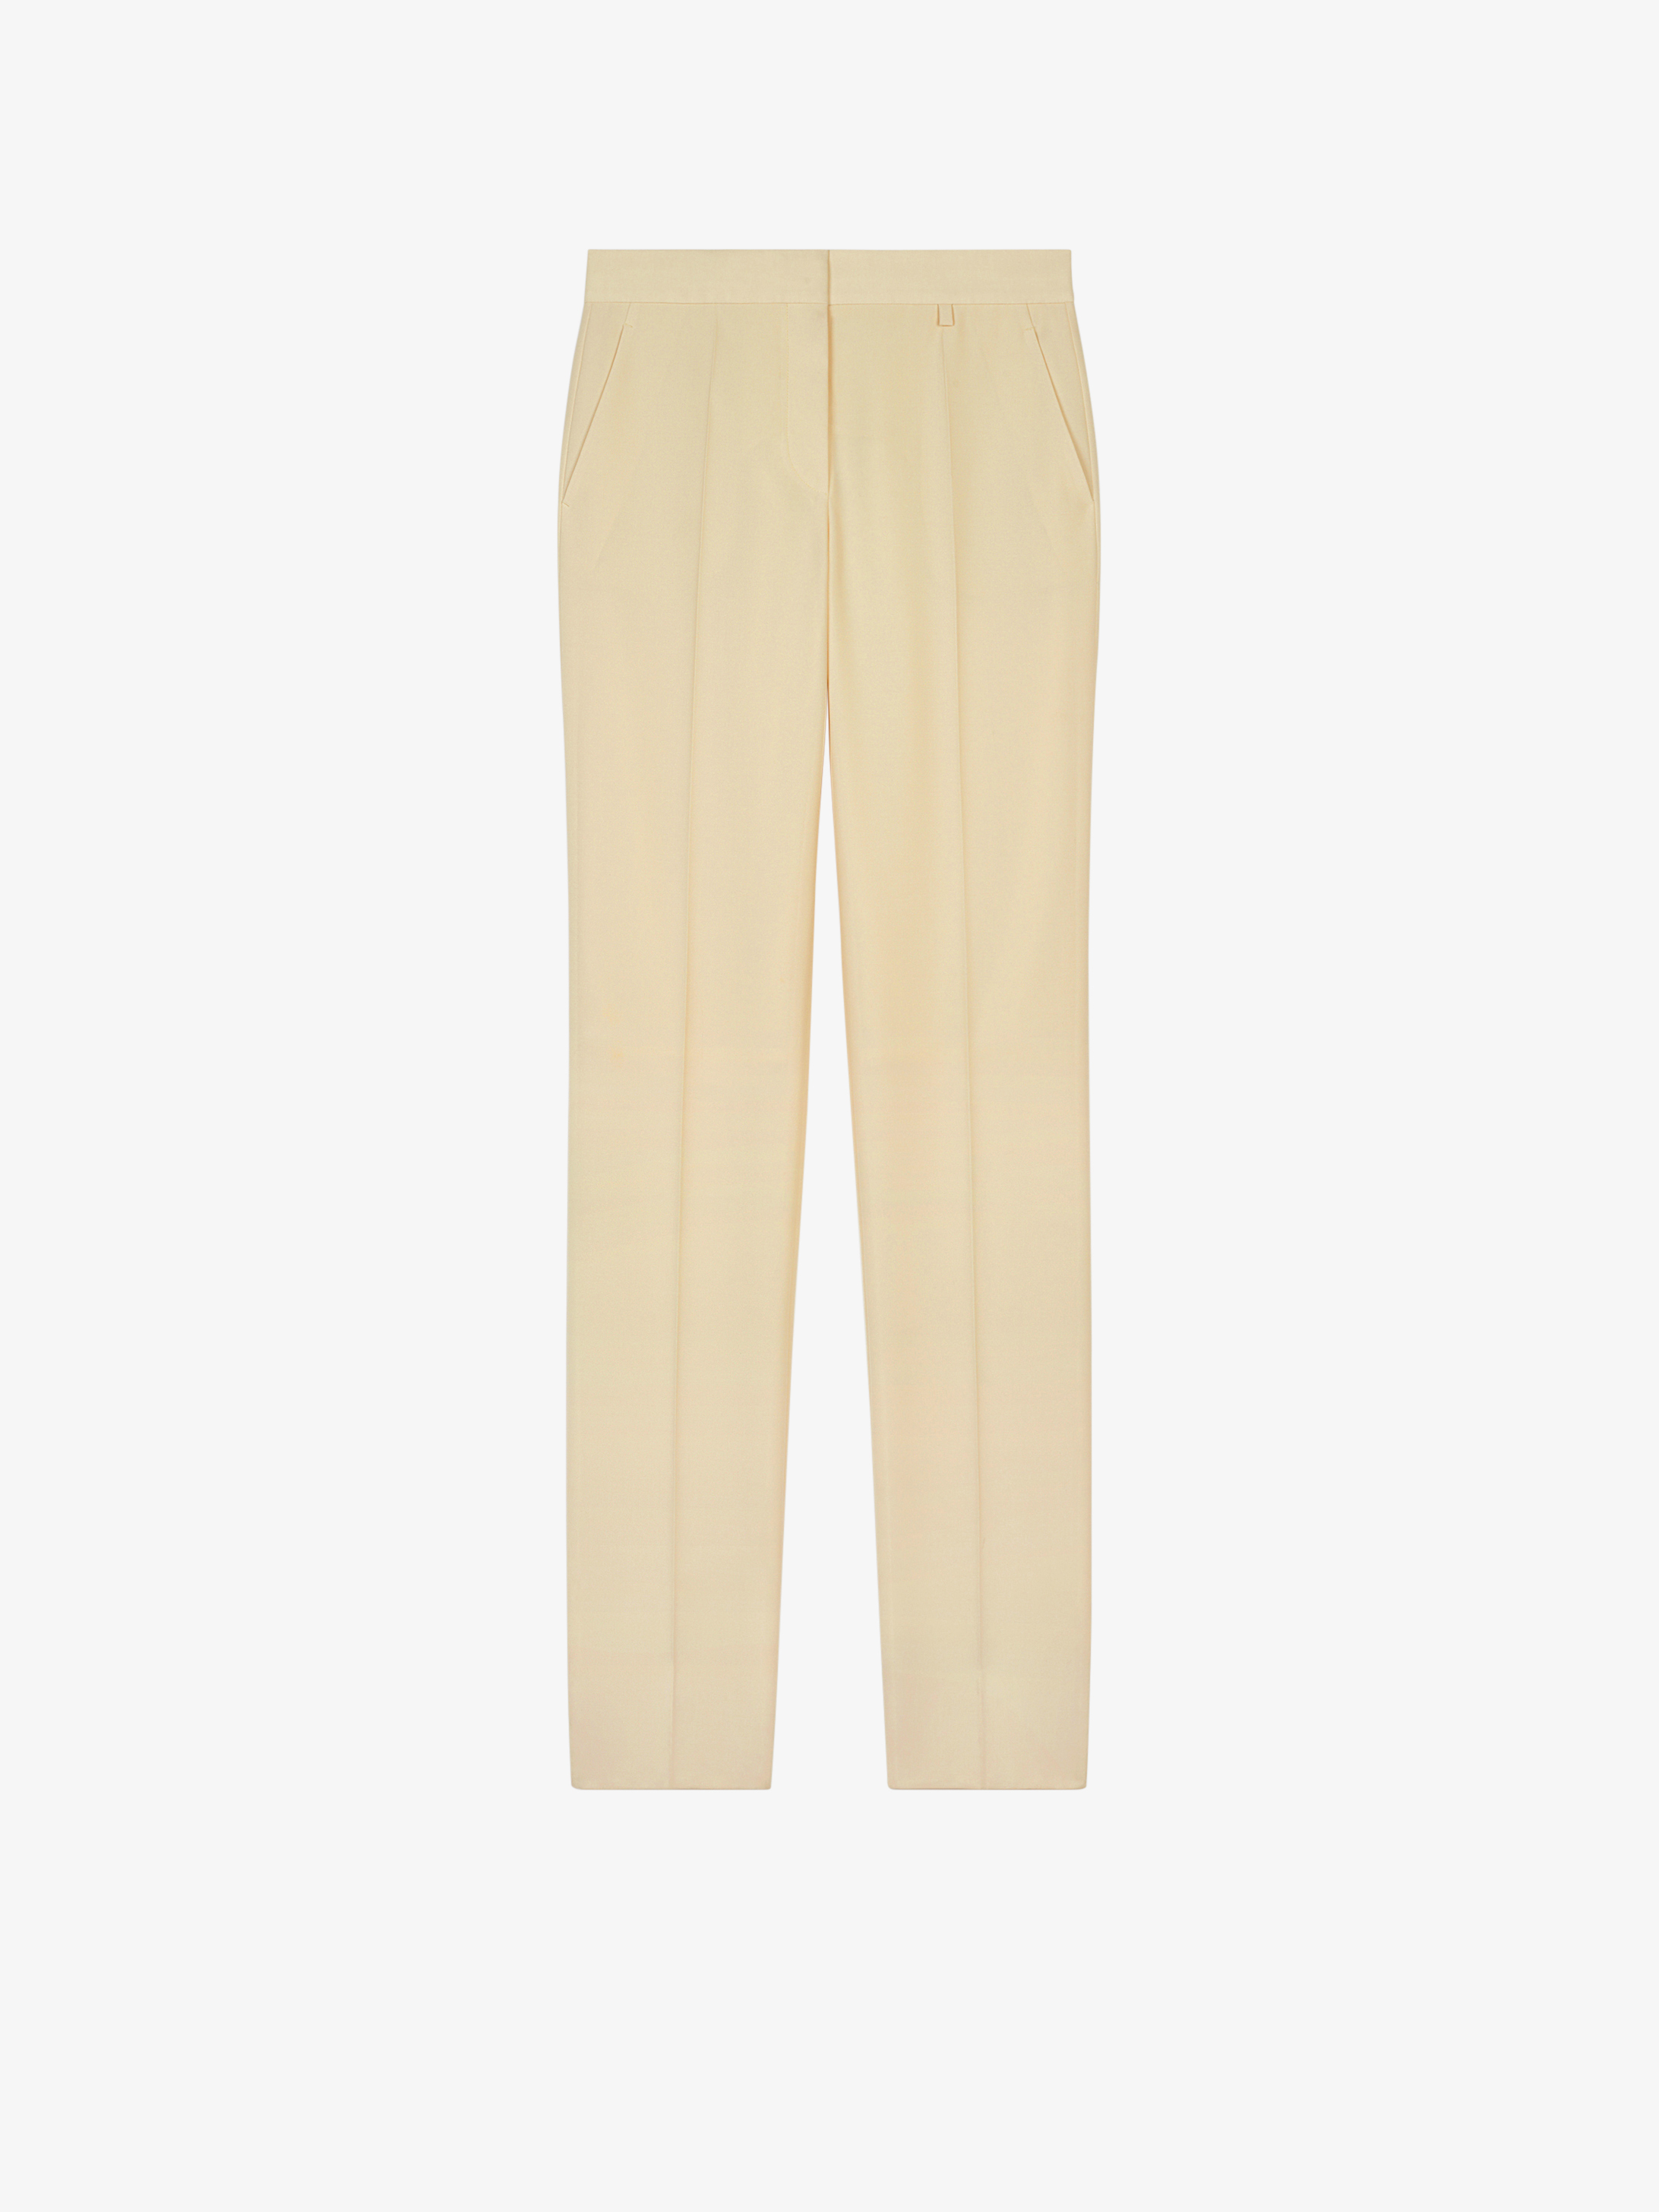 High waisted pants in cotton gabardine